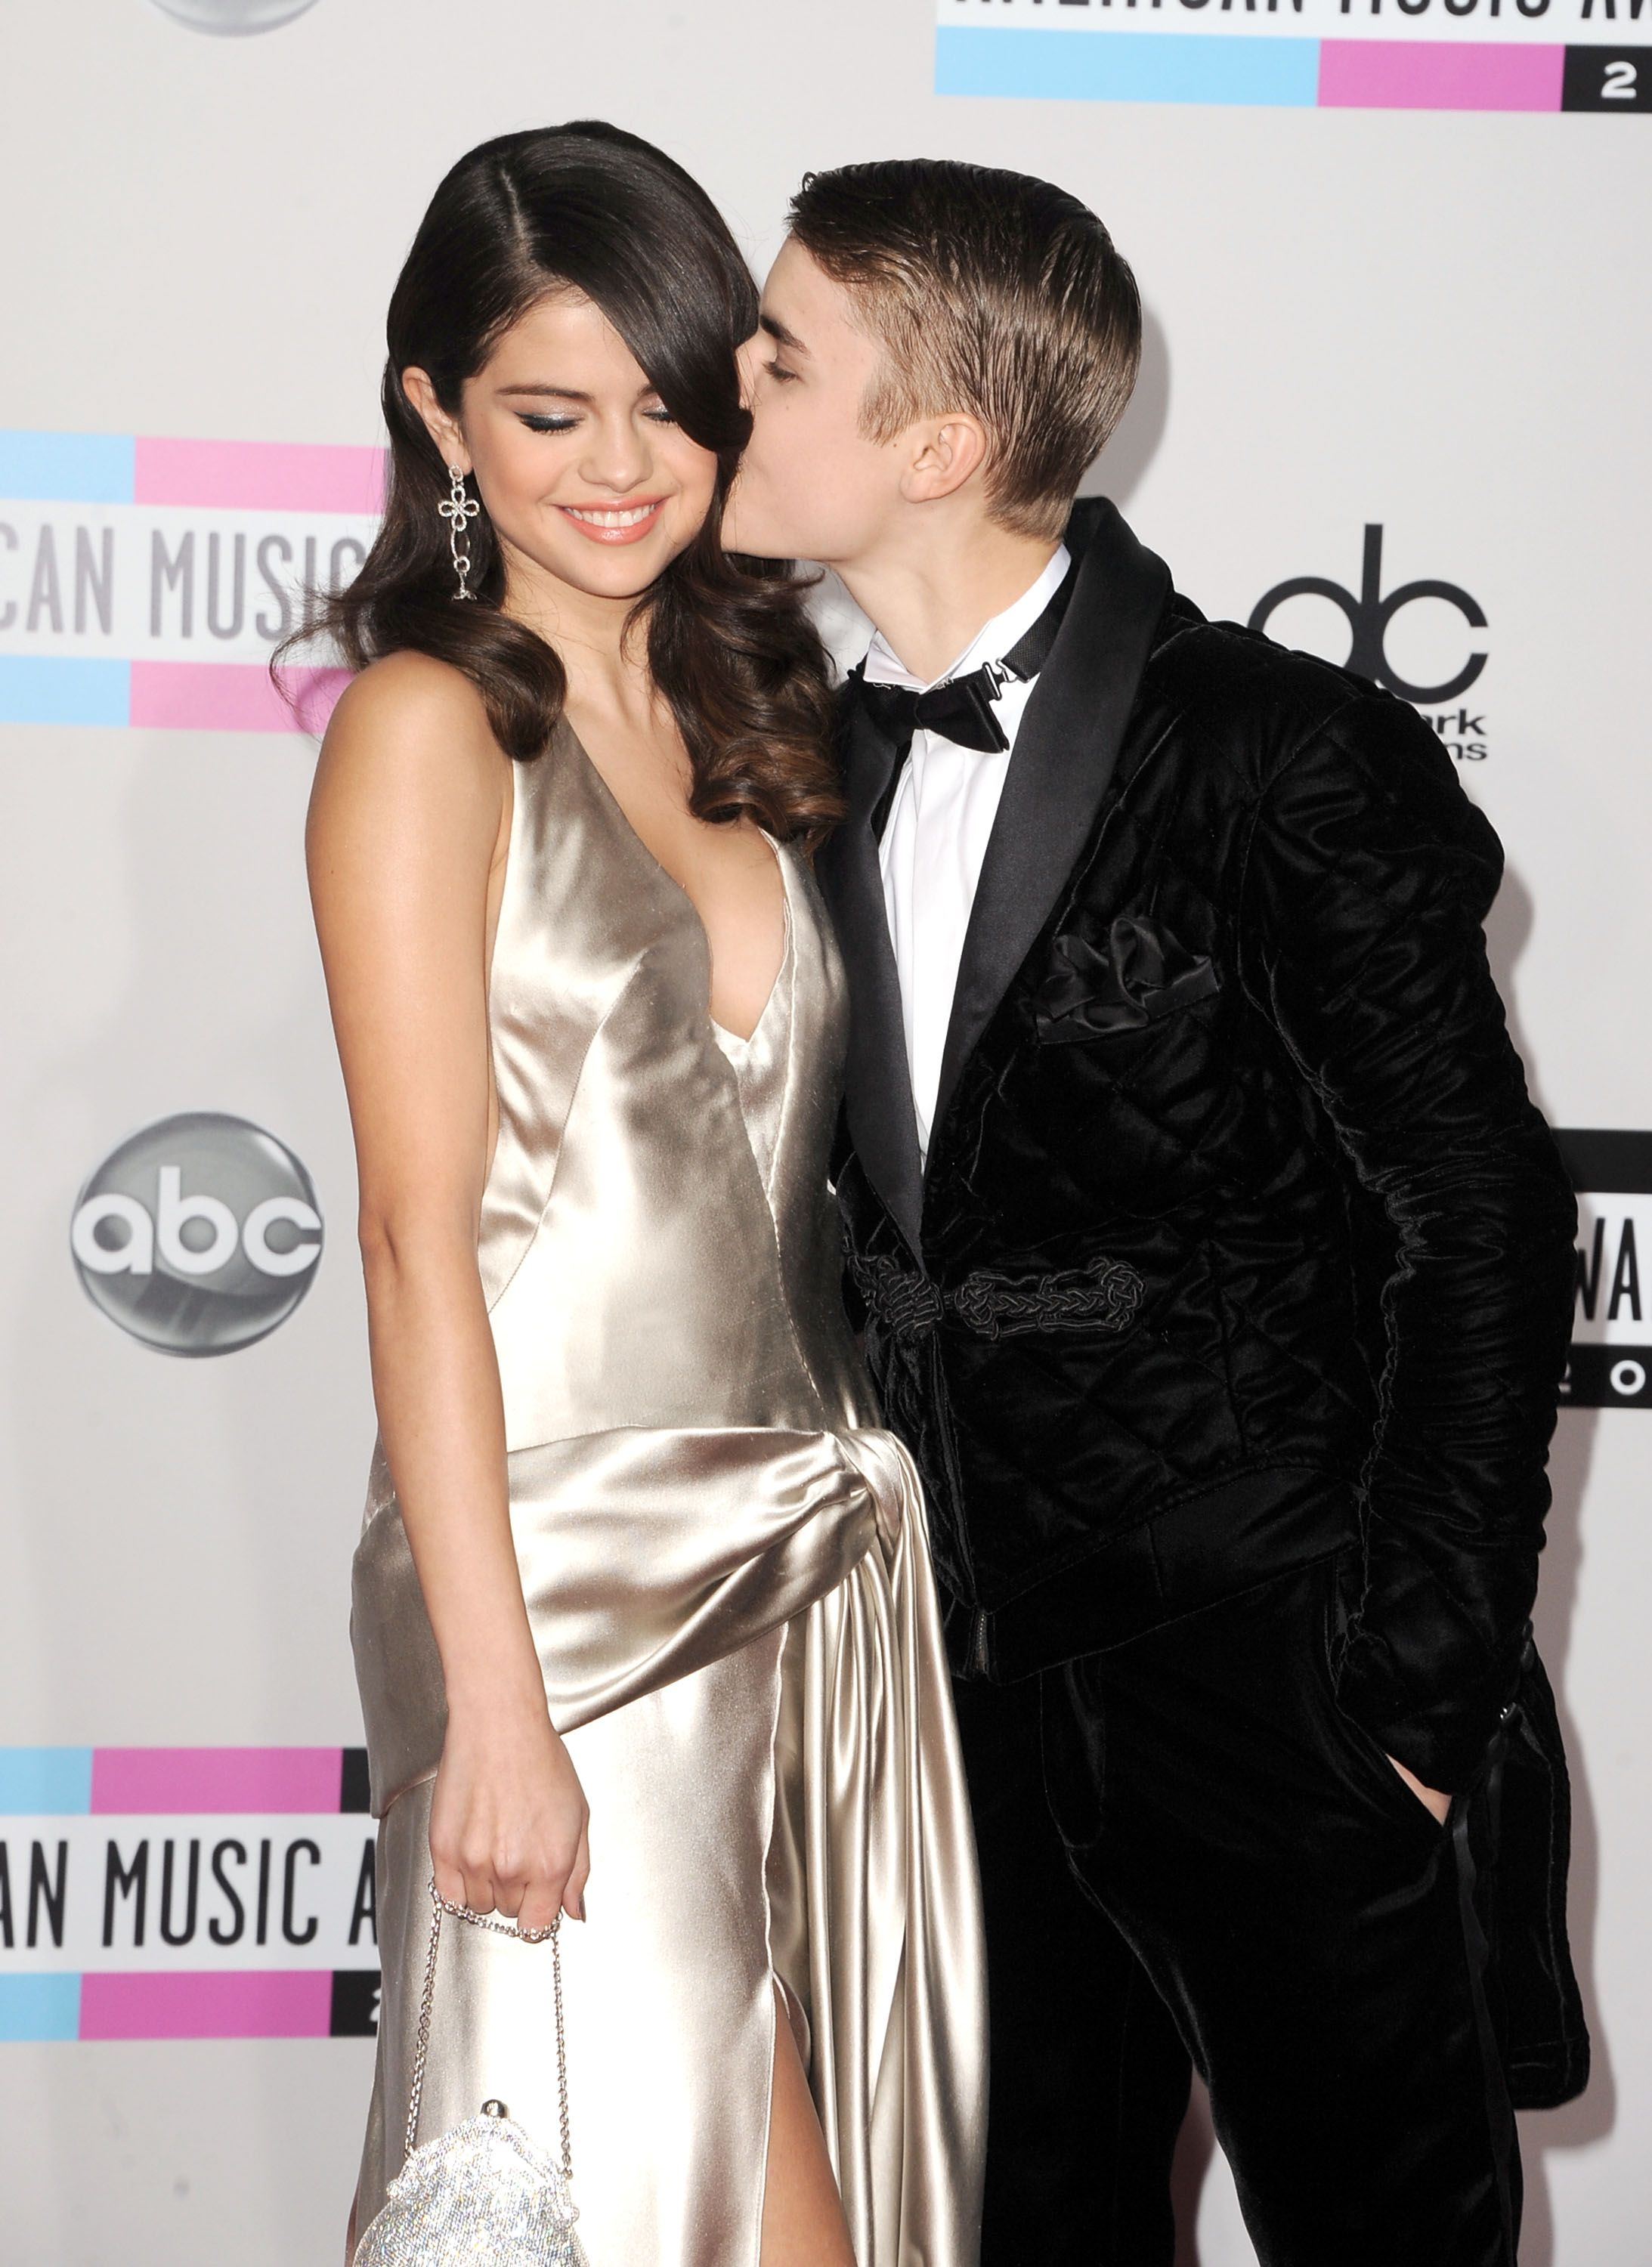 is justin bieber currently dating selena gomez ghanaweb datiert auf die Suche nach Frau